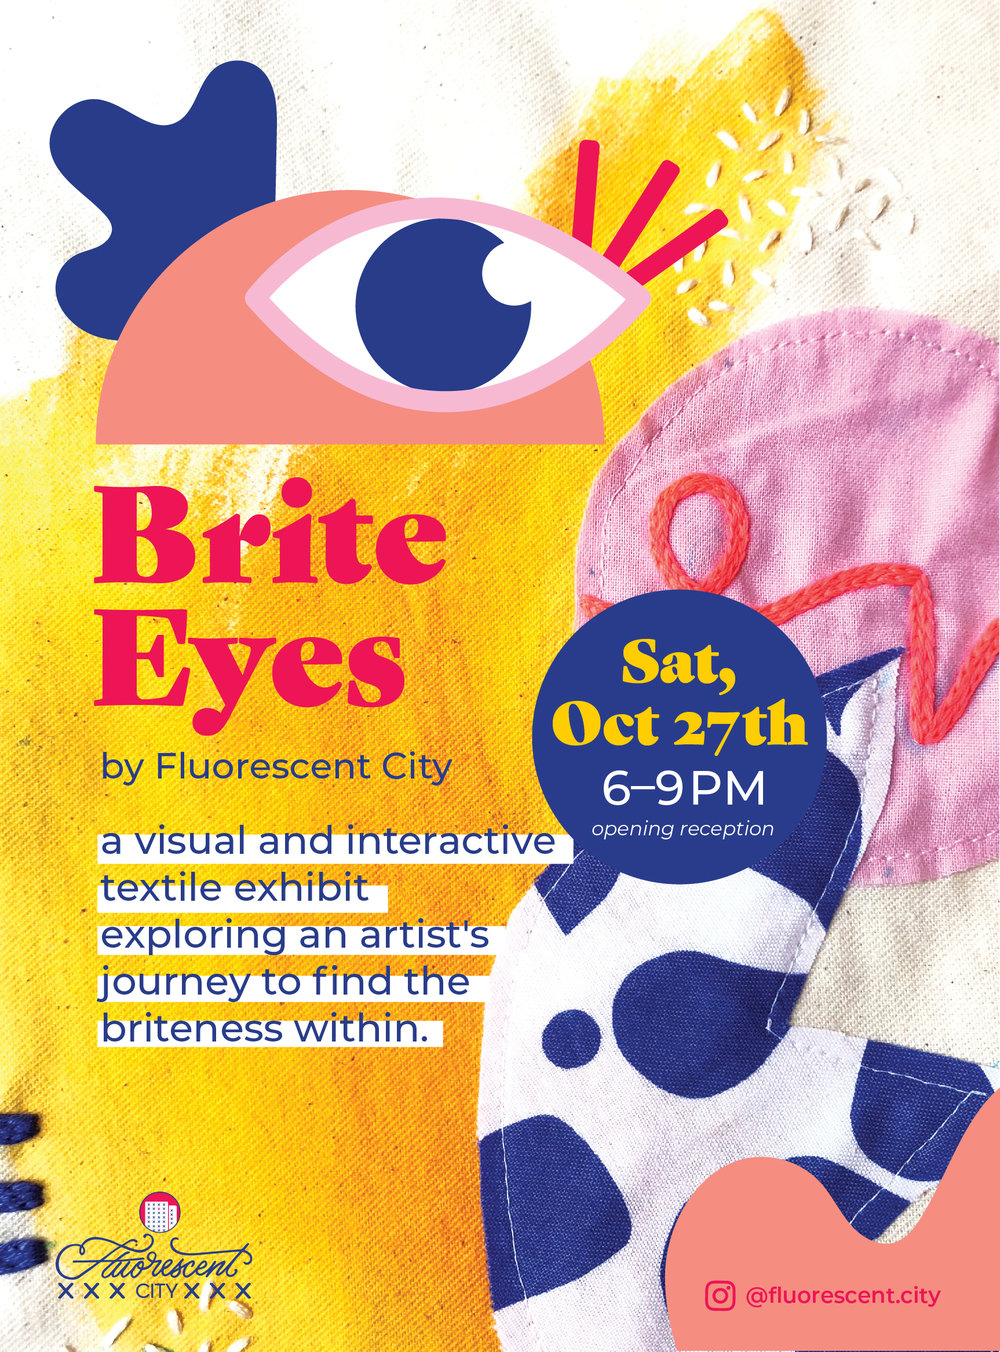 BriteEyes_Flyer_Web-01 copy.jpg